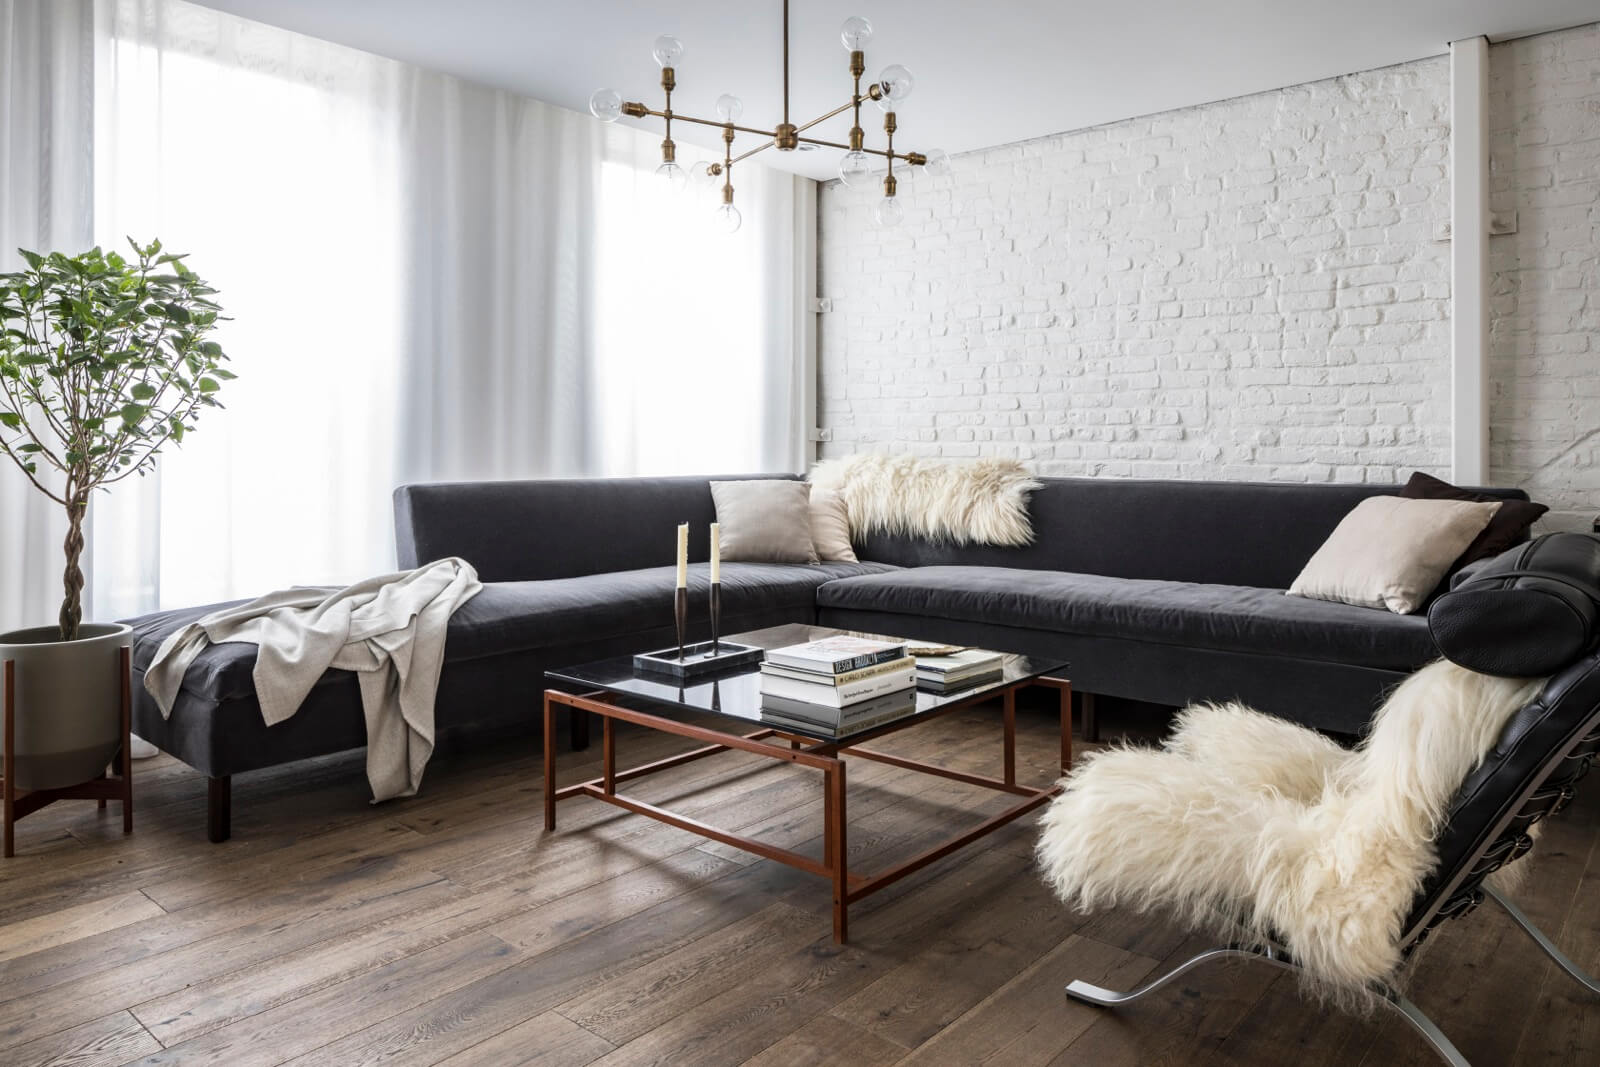 Scandinavian Living Room Ideas That Look Awesome